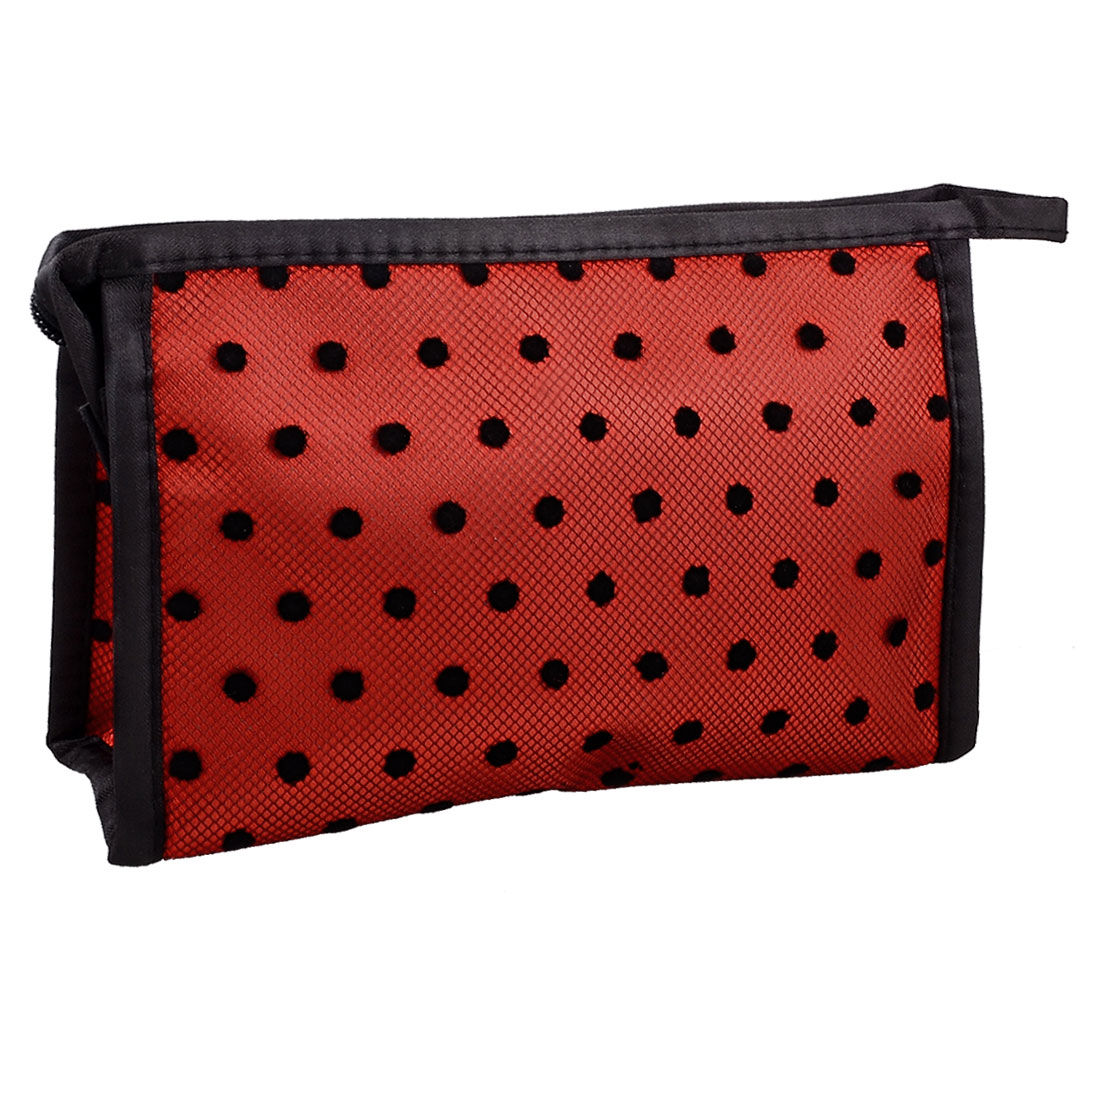 Zippered Rectangular Black Dotted Mesh Lace Makeup Cosmetic Case Pouch Hand Bag Red